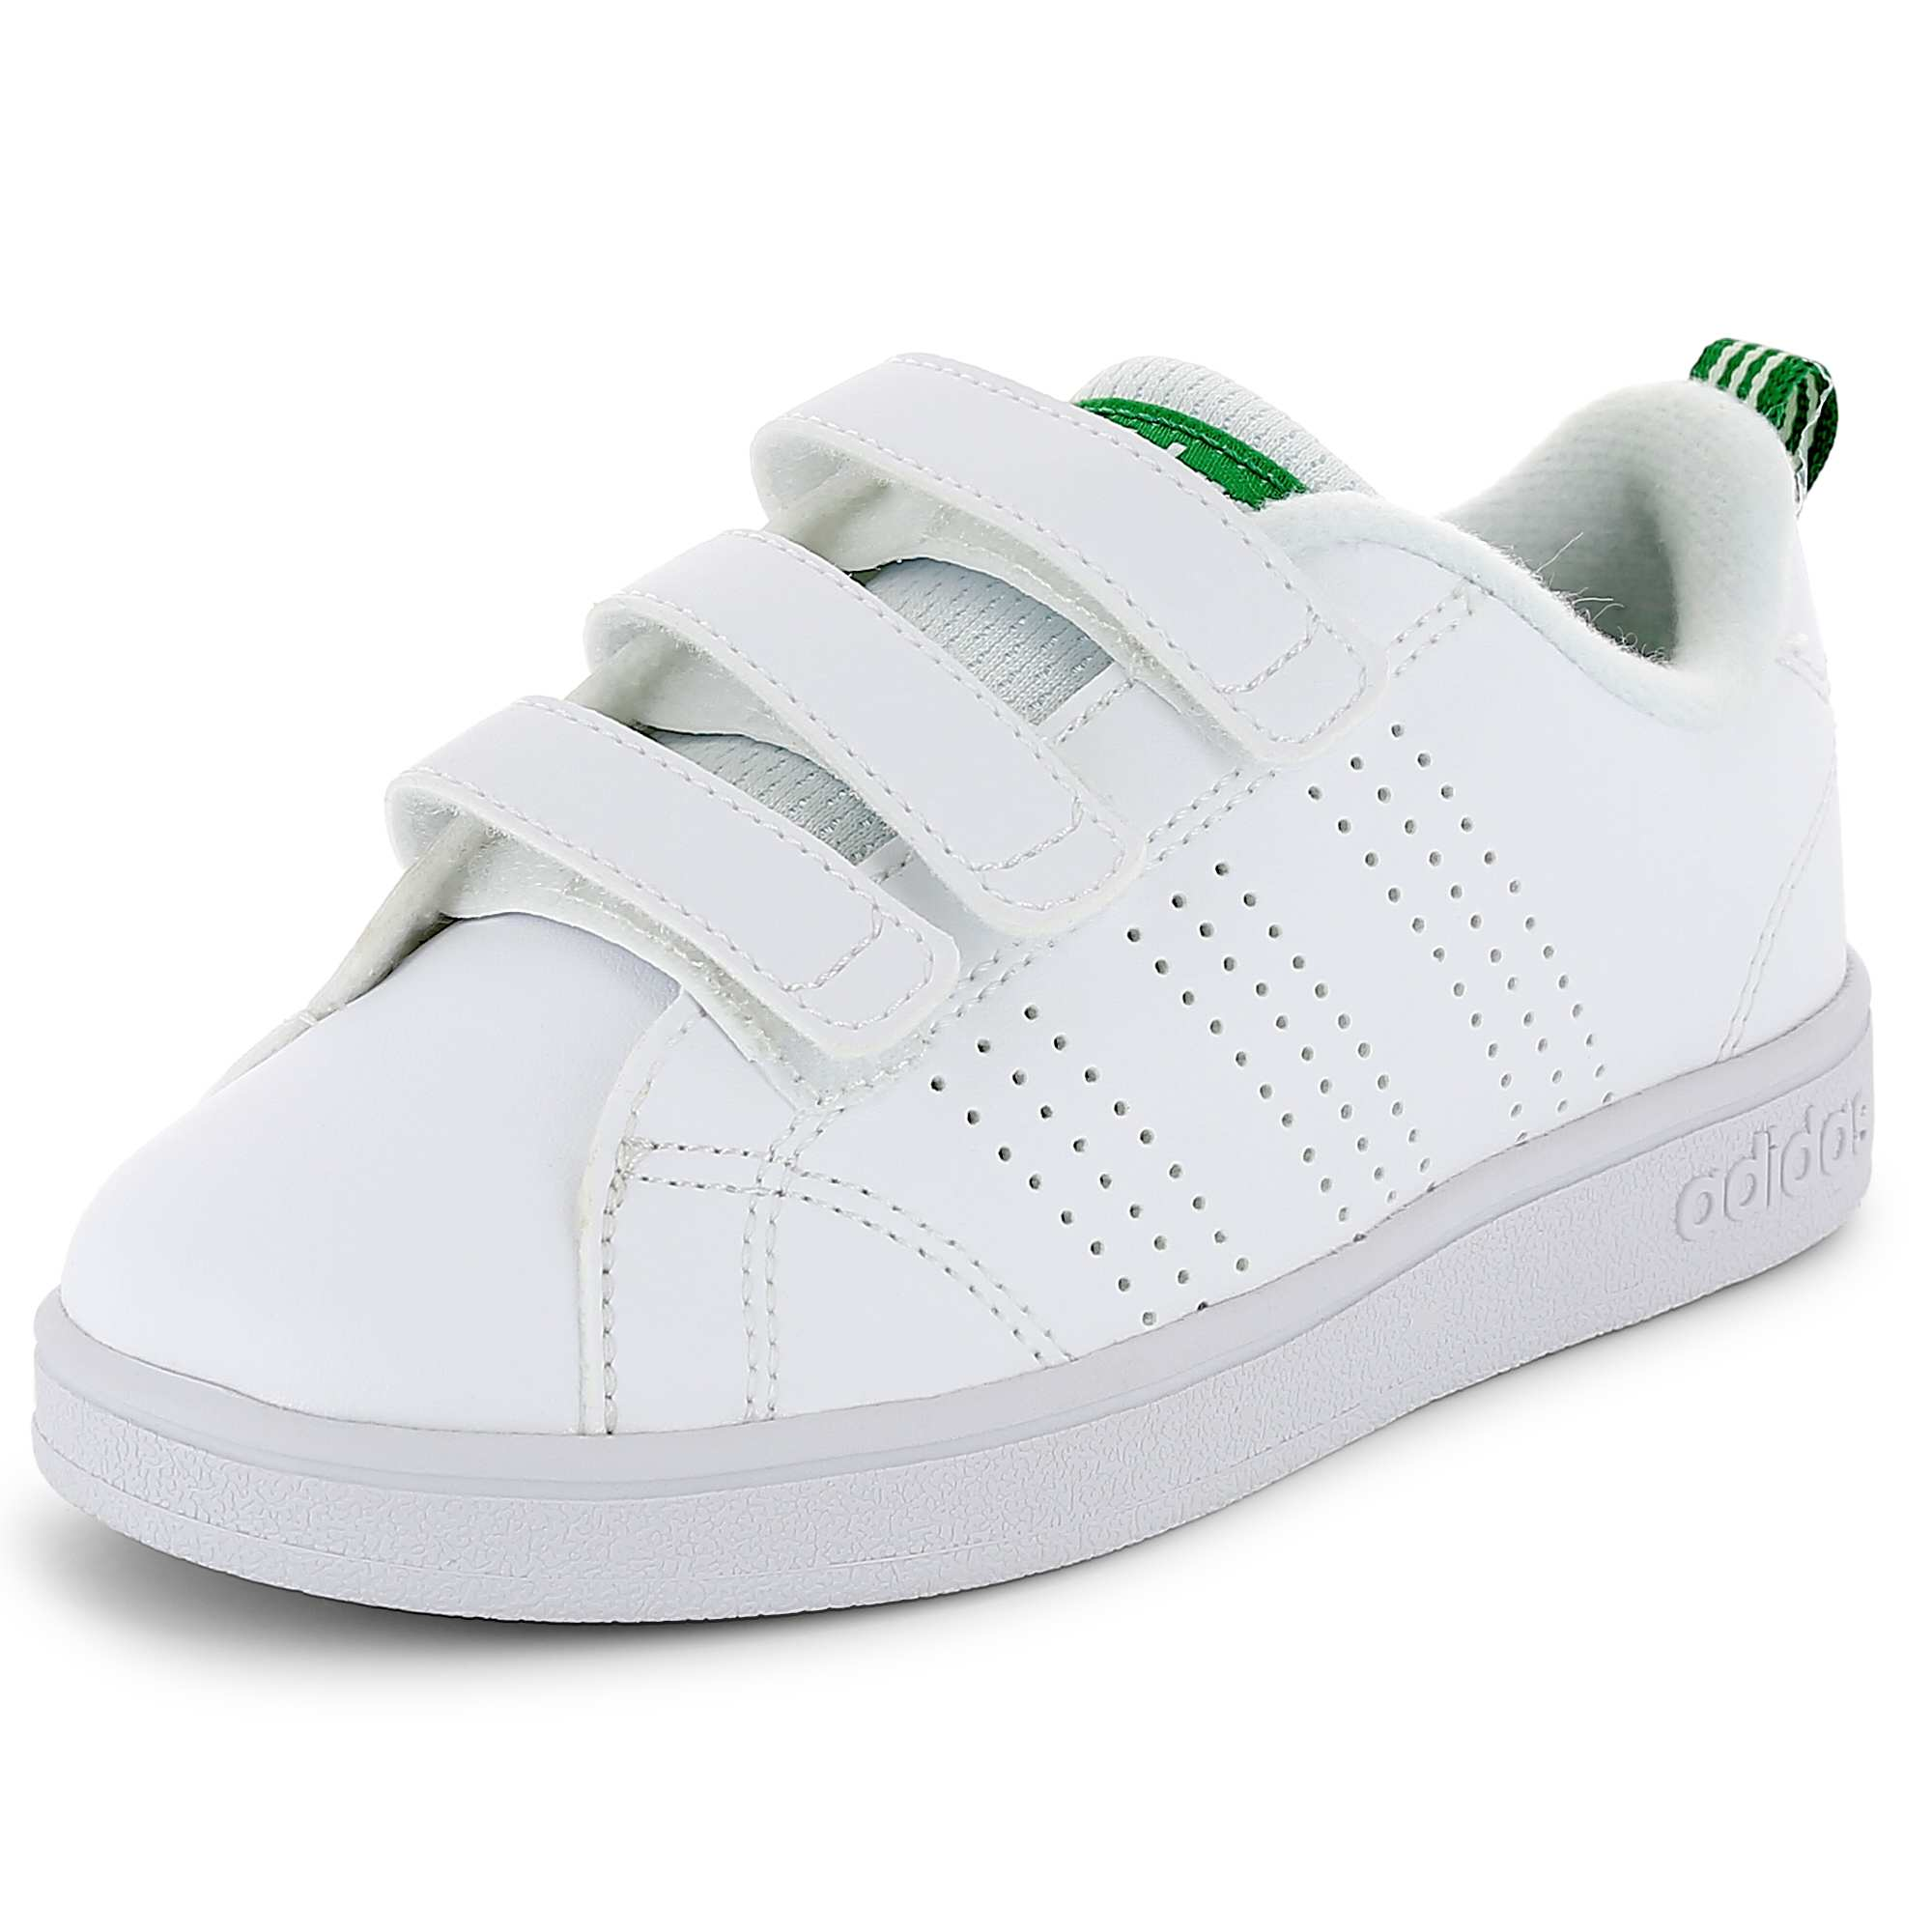 new arrival 41bf2 9142c Baskets Adidas VS Advantage Clean à scratchs blancvert Garçon. Loading  zoom